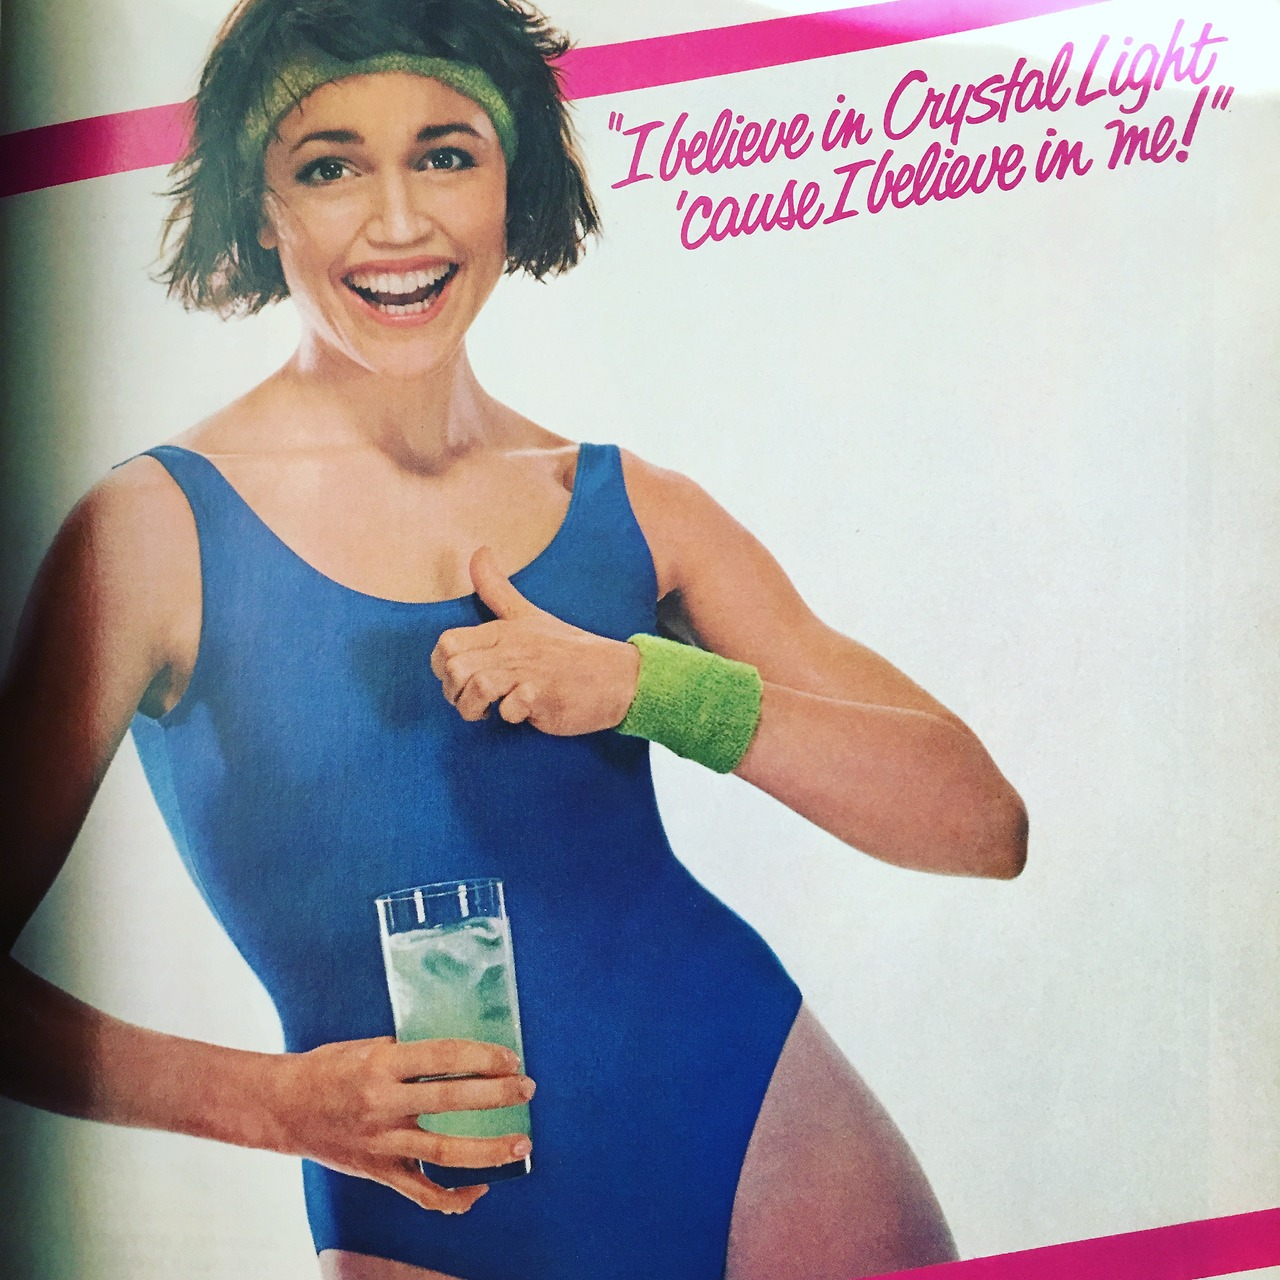 """""""I believe in Crystal Light 'cause I believe in me!"""" The jingle is now going to be stuck in my head all day with visions of 80s aerobics videos.  Glamour. July 1984.  The aerobics fad of the'80s was defintely a major phenomenon. Everything from the 1981 Olivia Newton John""""Let's Get Physical"""" video (double entendre notwithstanding), to Great Shape Barbie from 1983 - the fitness craze was pretty much sweeping the nation, and of course marketers decided to capitalize on low-sugar, low-fat, diet products. Crystal Light was introduced in 1982 and was targeted toward health-conscious women, leotard, sweatband and all."""